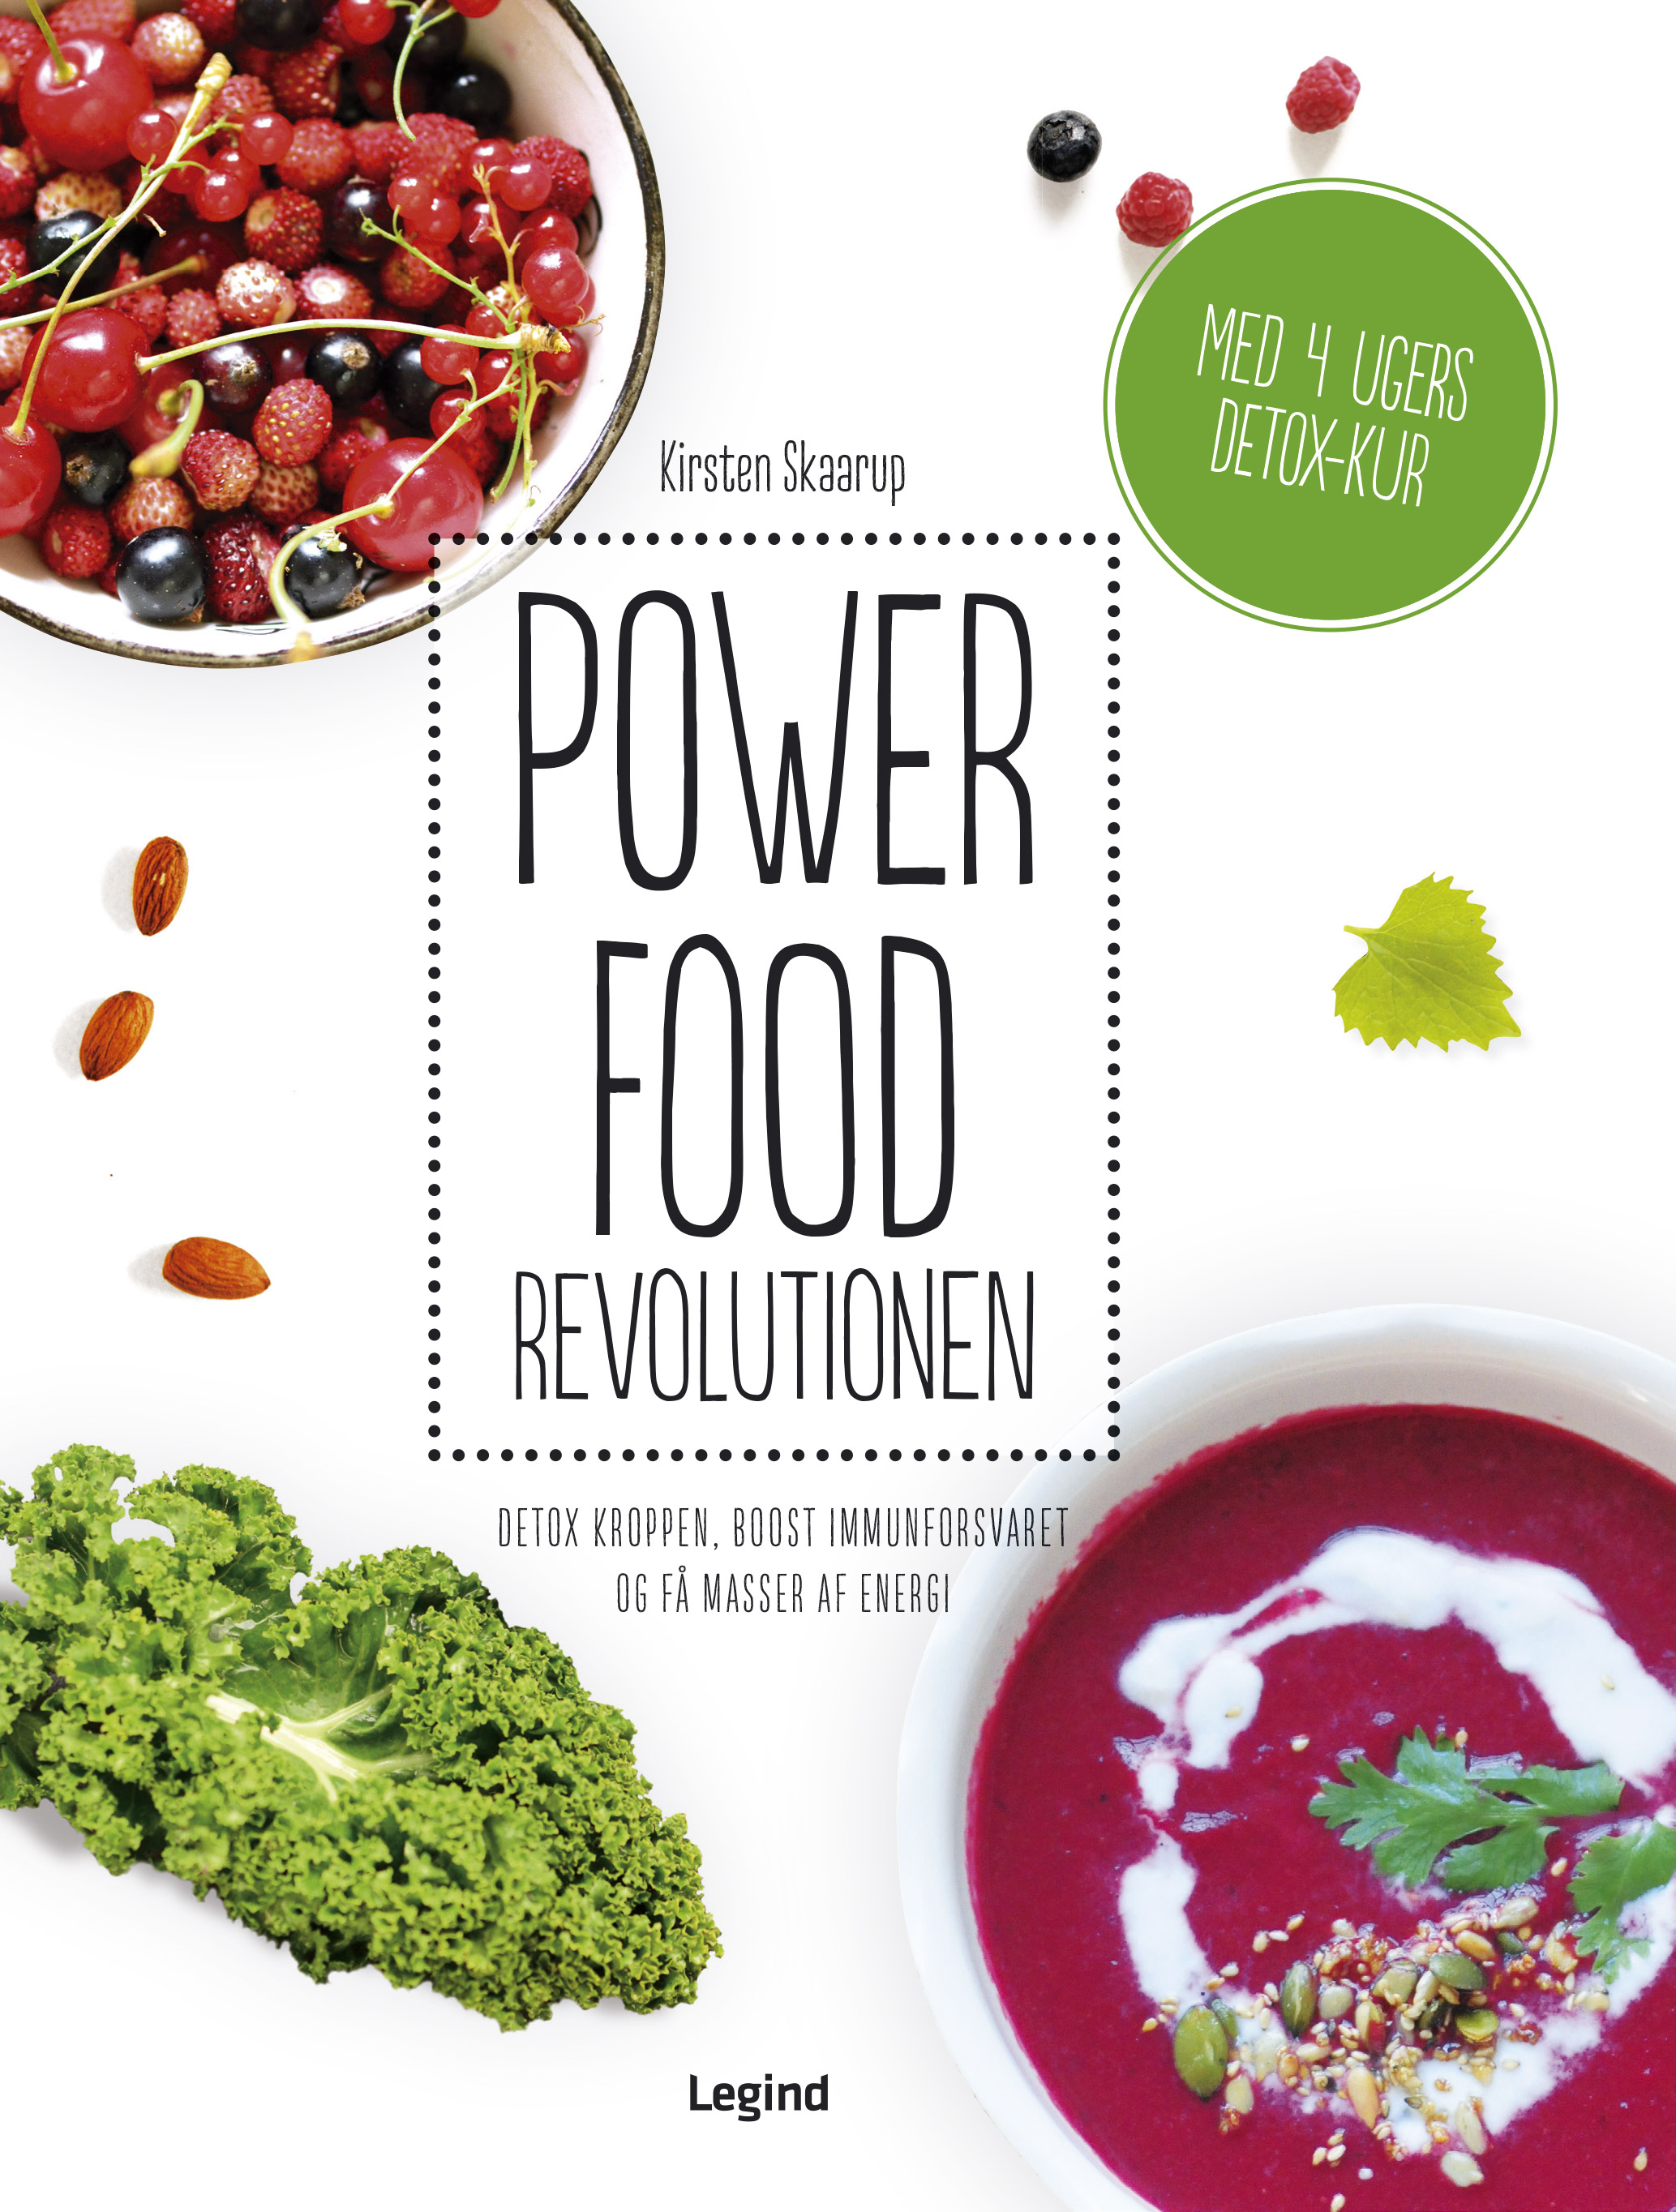 Powerfood cover design and layout by Martin Flink